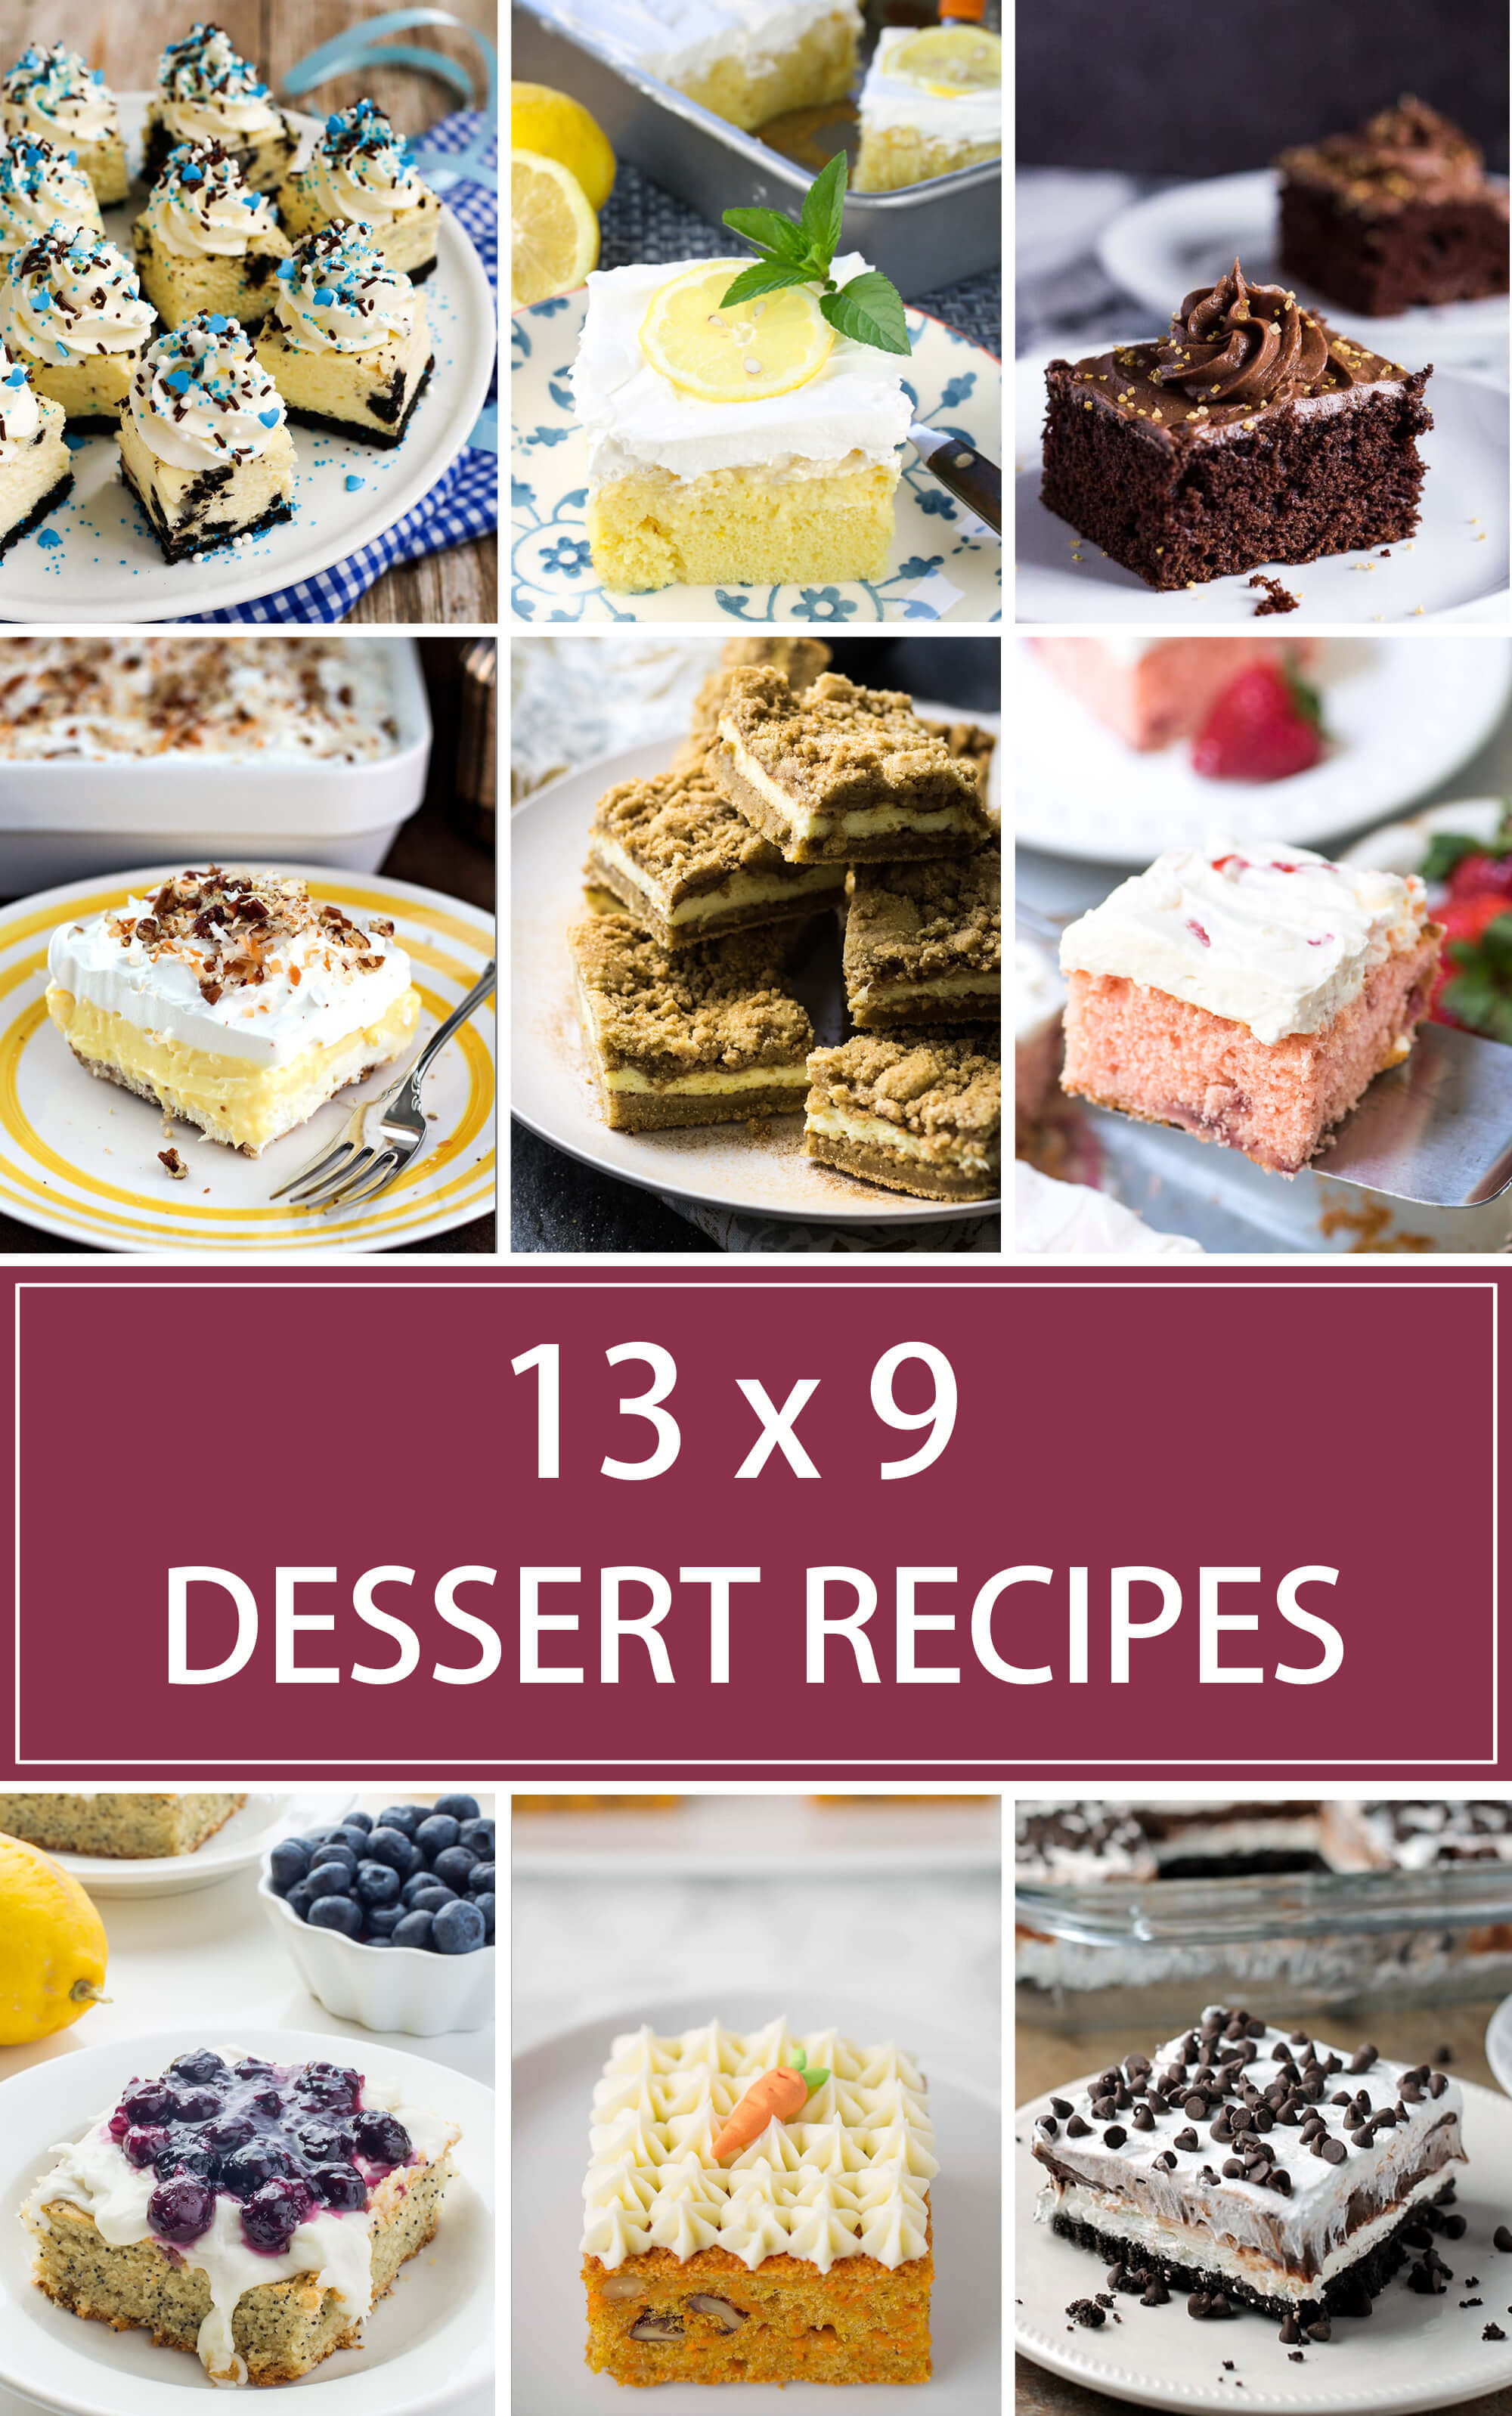 Easy Christmas Desserts For A Crowd  13 x 9 Dessert Recipes for a Crowd Valerie s Kitchen